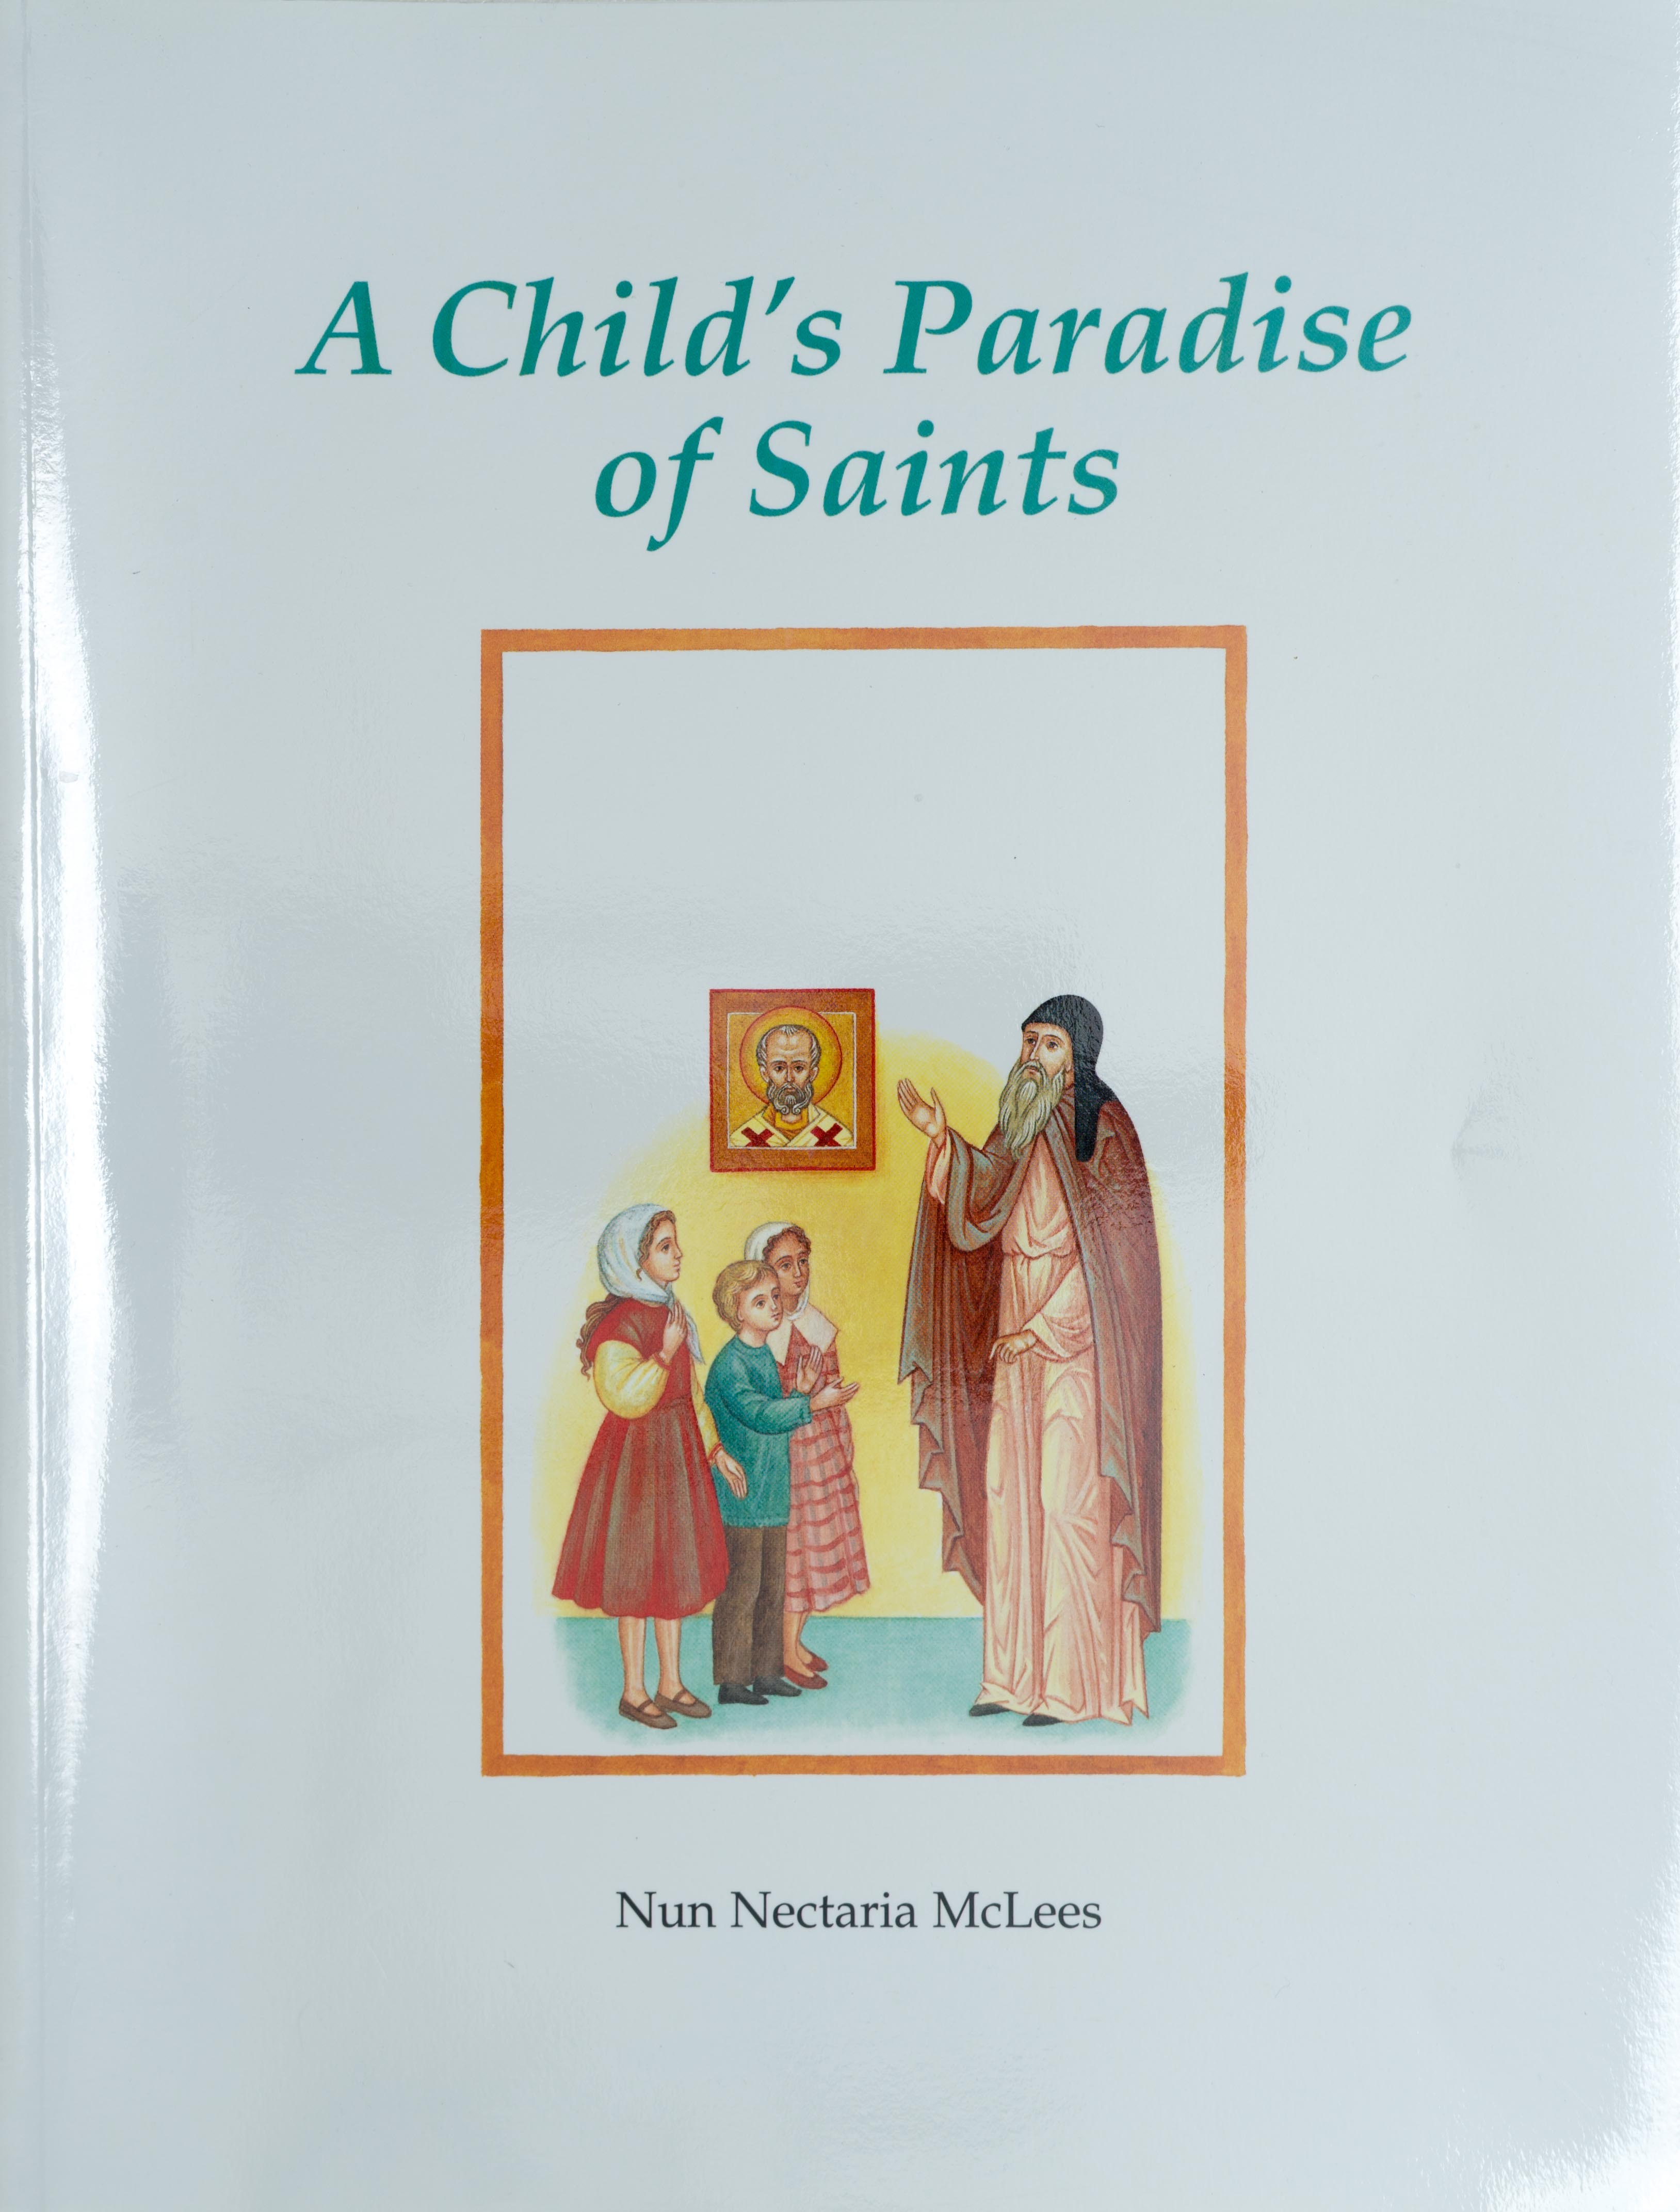 A Child's Paradise of Saints                                                                                                     OUT OF STOCK